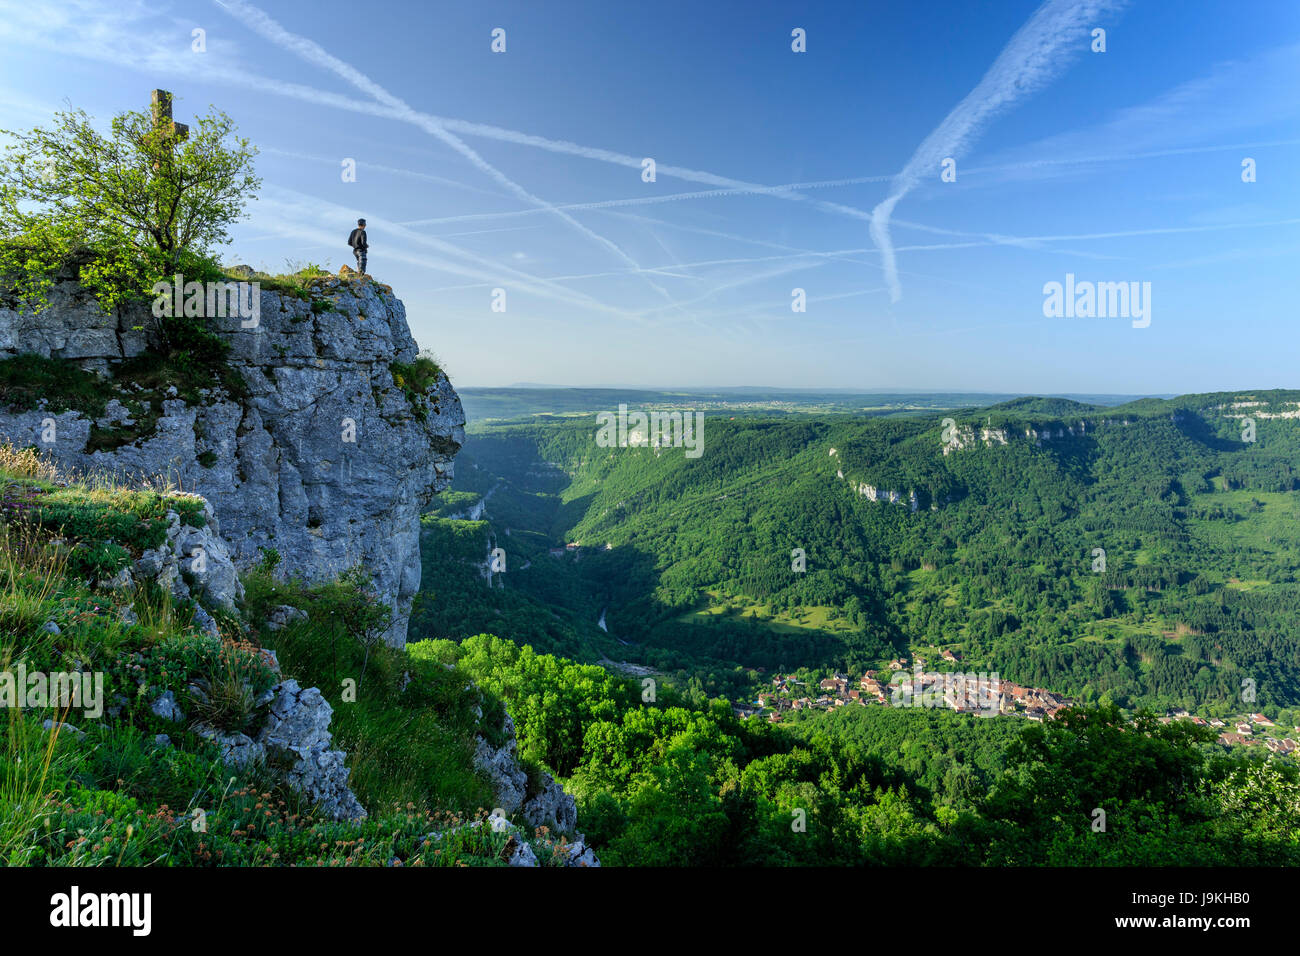 France, Doubs, Mouthier Haute Pierre, Roche de Hautepierre lookout point on the Loue valley and the village of Mouthier - Stock Image